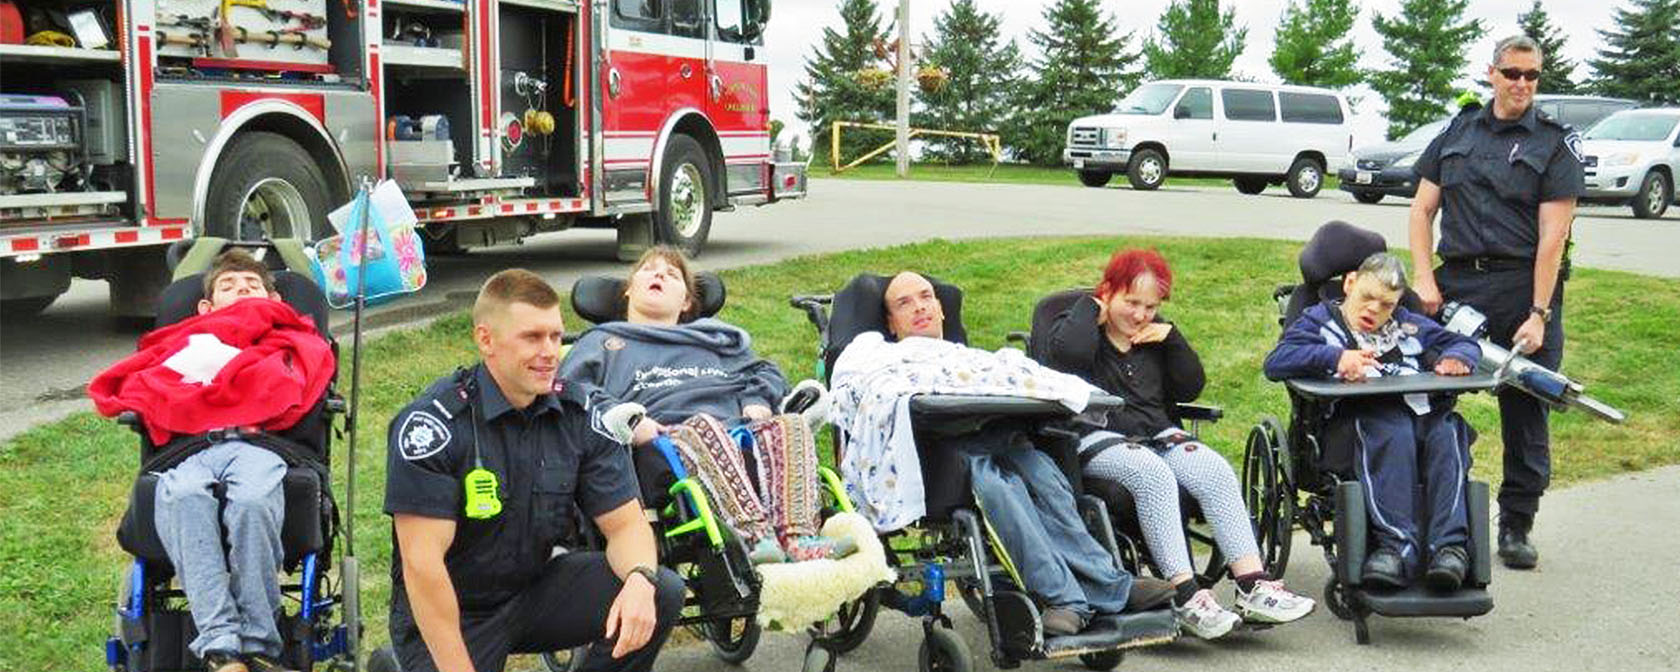 group of people in wheelchairs pose with firefighters